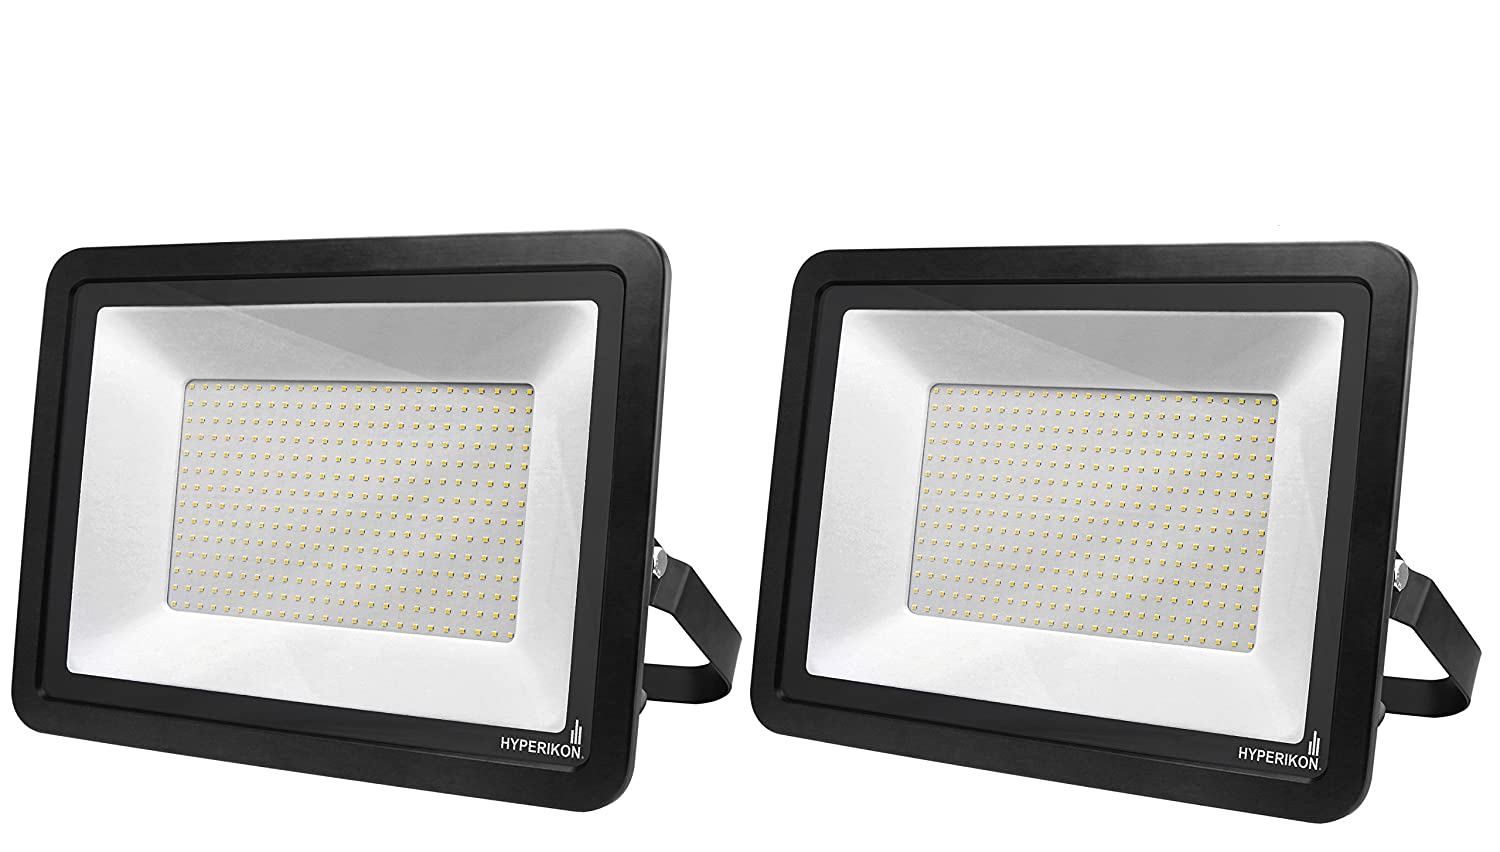 Hyperikon 300W LED Flood Light Outdoor, 110V Waterproof IP65 Floodlights LED, 24000 Lumen, 180° Rotatable Bracket, Suitable for Dry and Damp Locations, 5000K (2-Pack)